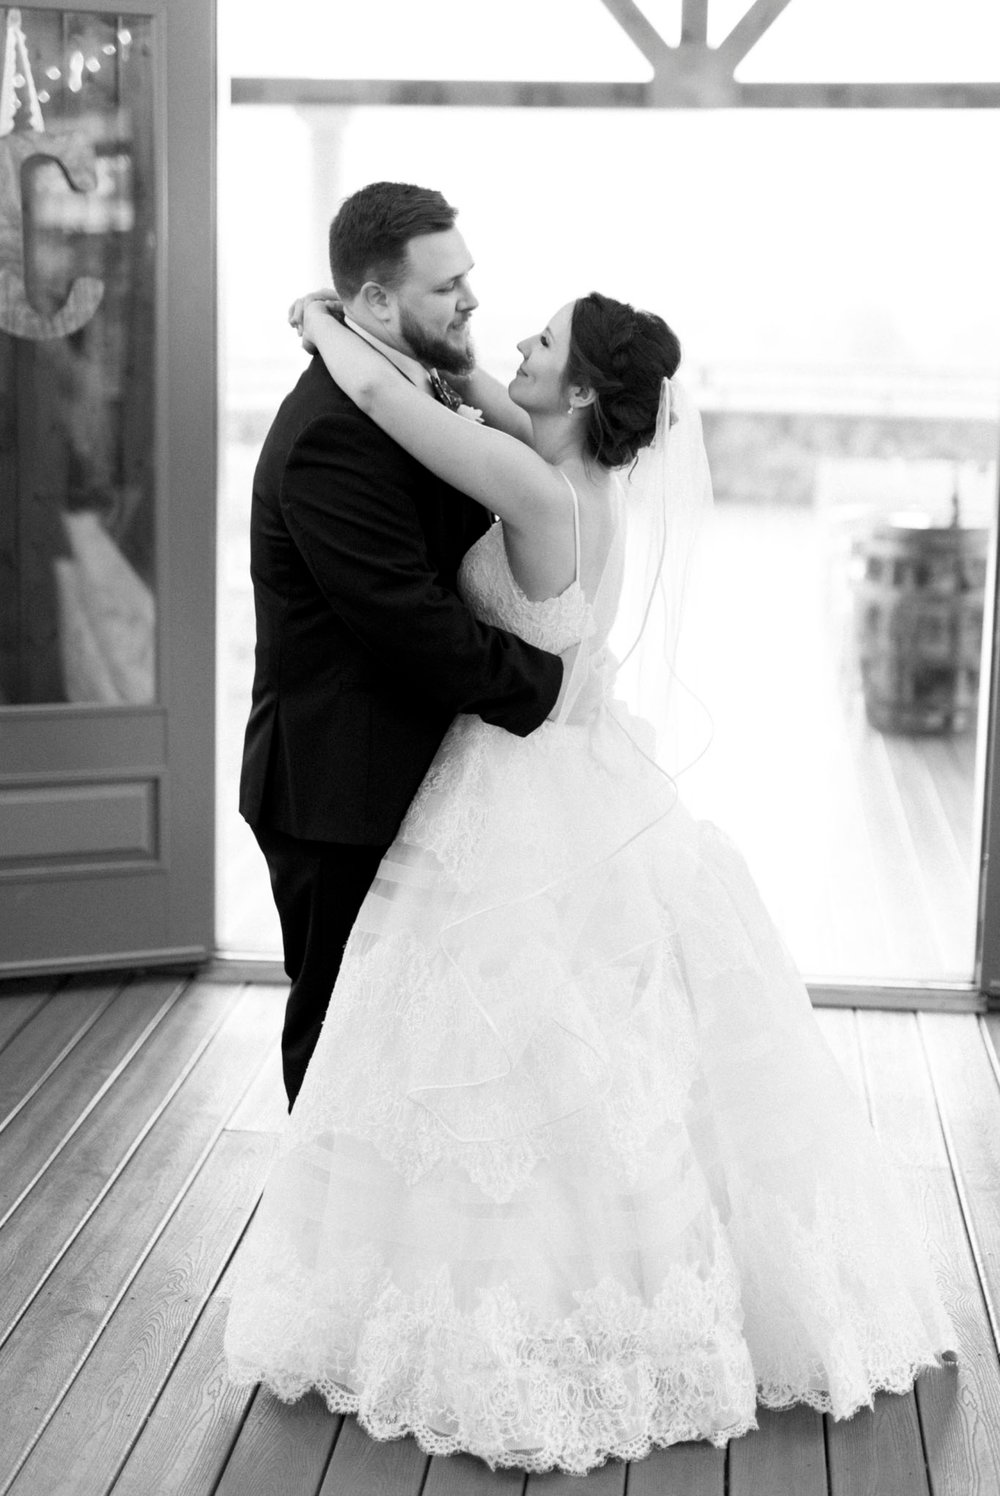 IrvineEstate_LexingtonVA_Wedding_FallWedding_VirginiaWeddingPhotographer 102.jpg